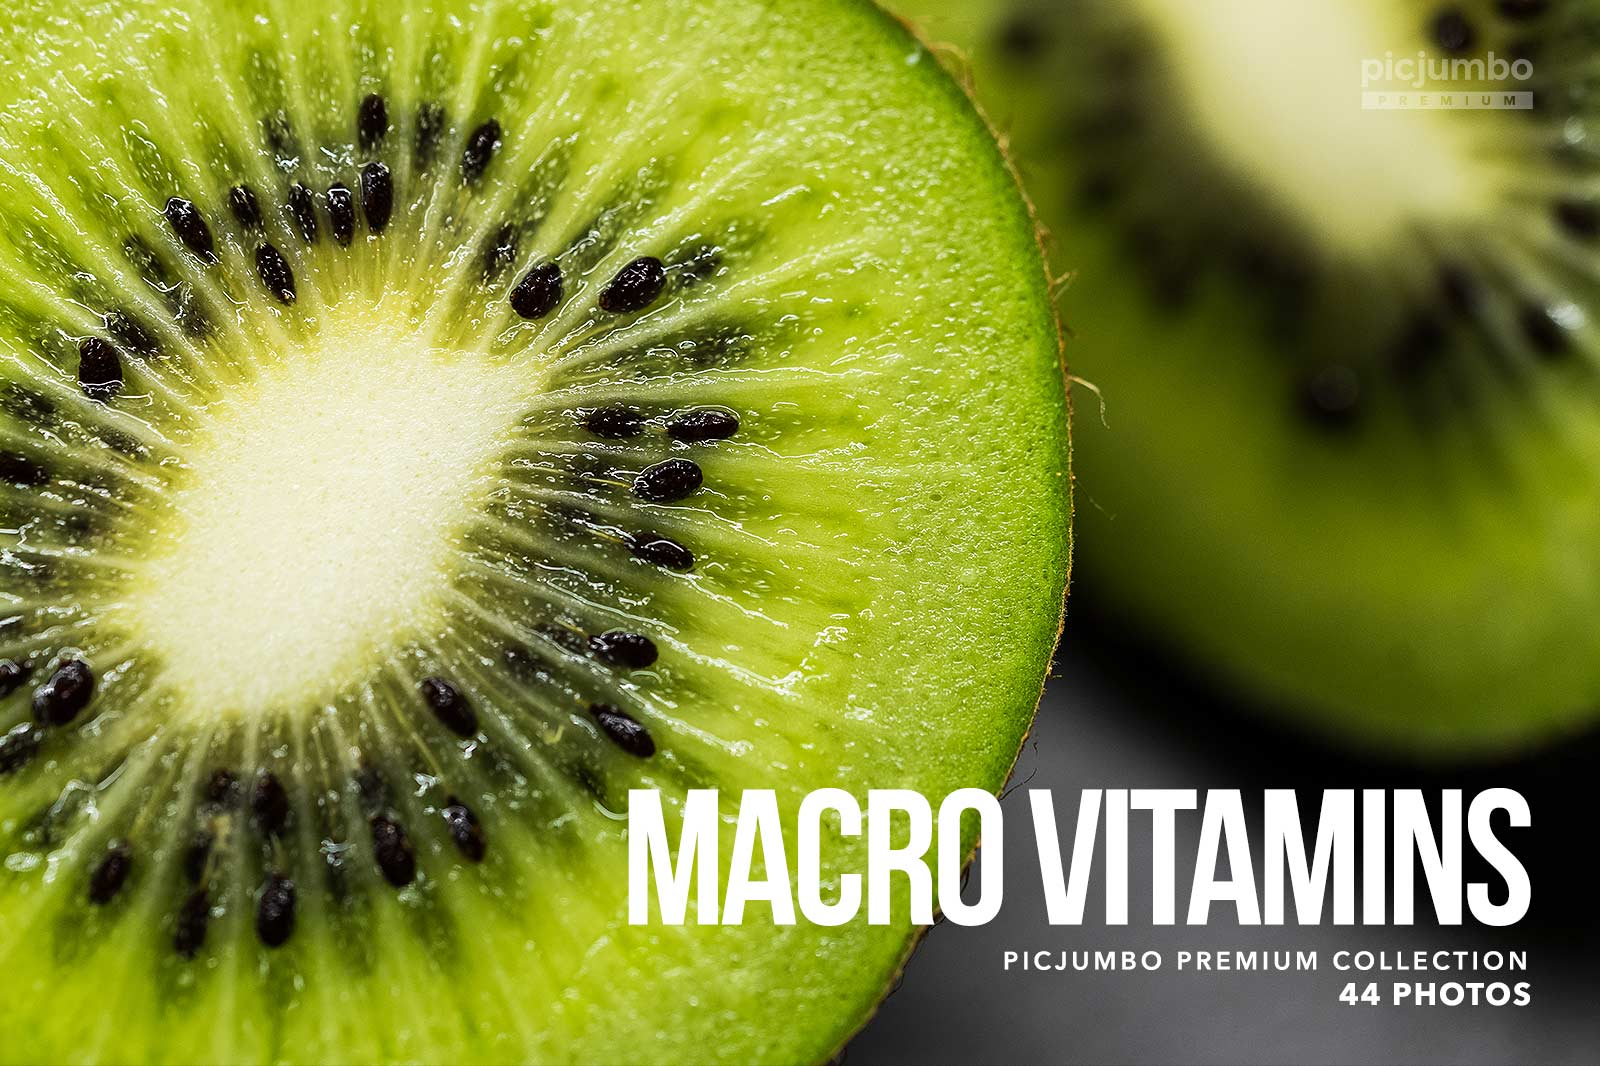 Click here to see Macro Vitamins PREMIUM Collection!